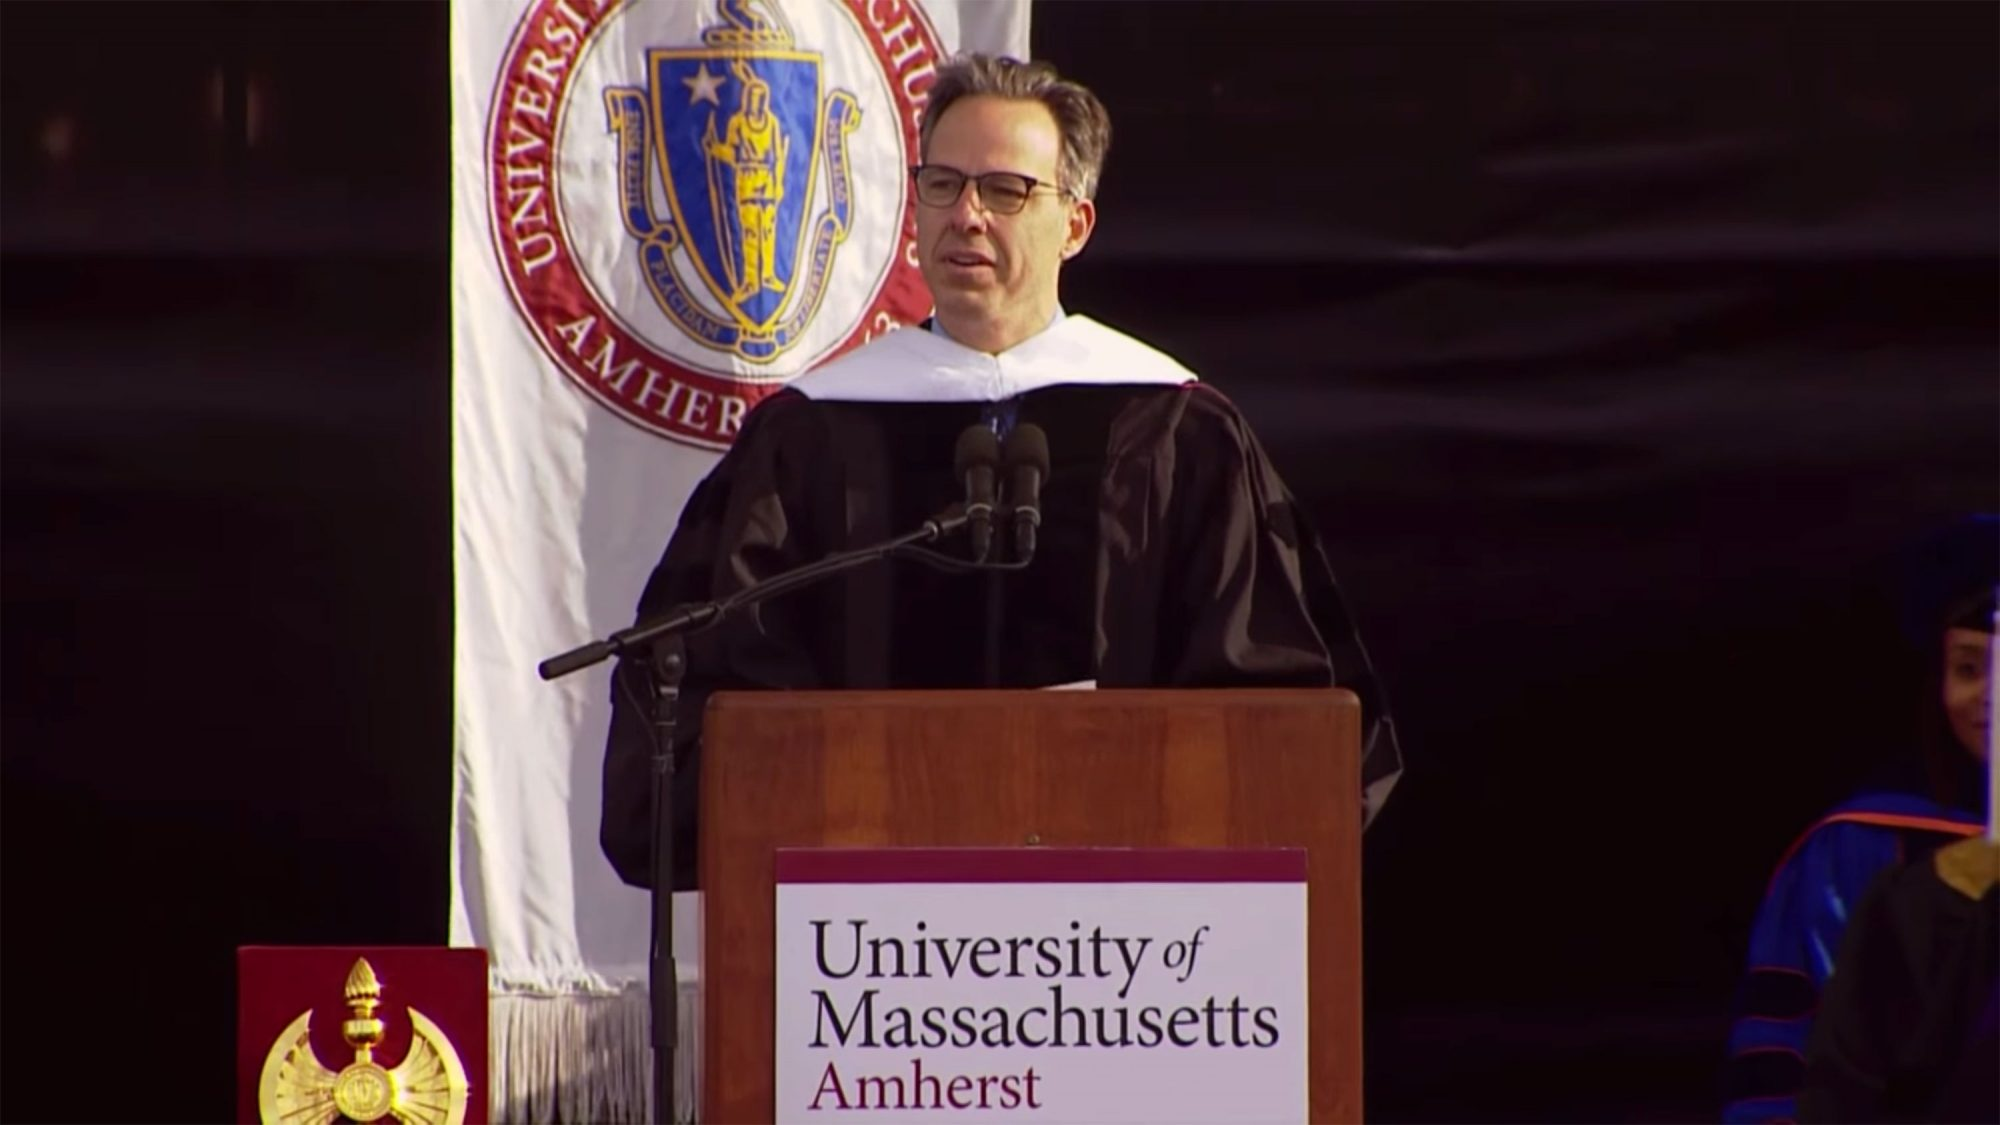 Jake Tapper (UMass Amherst, May 11, 2018)